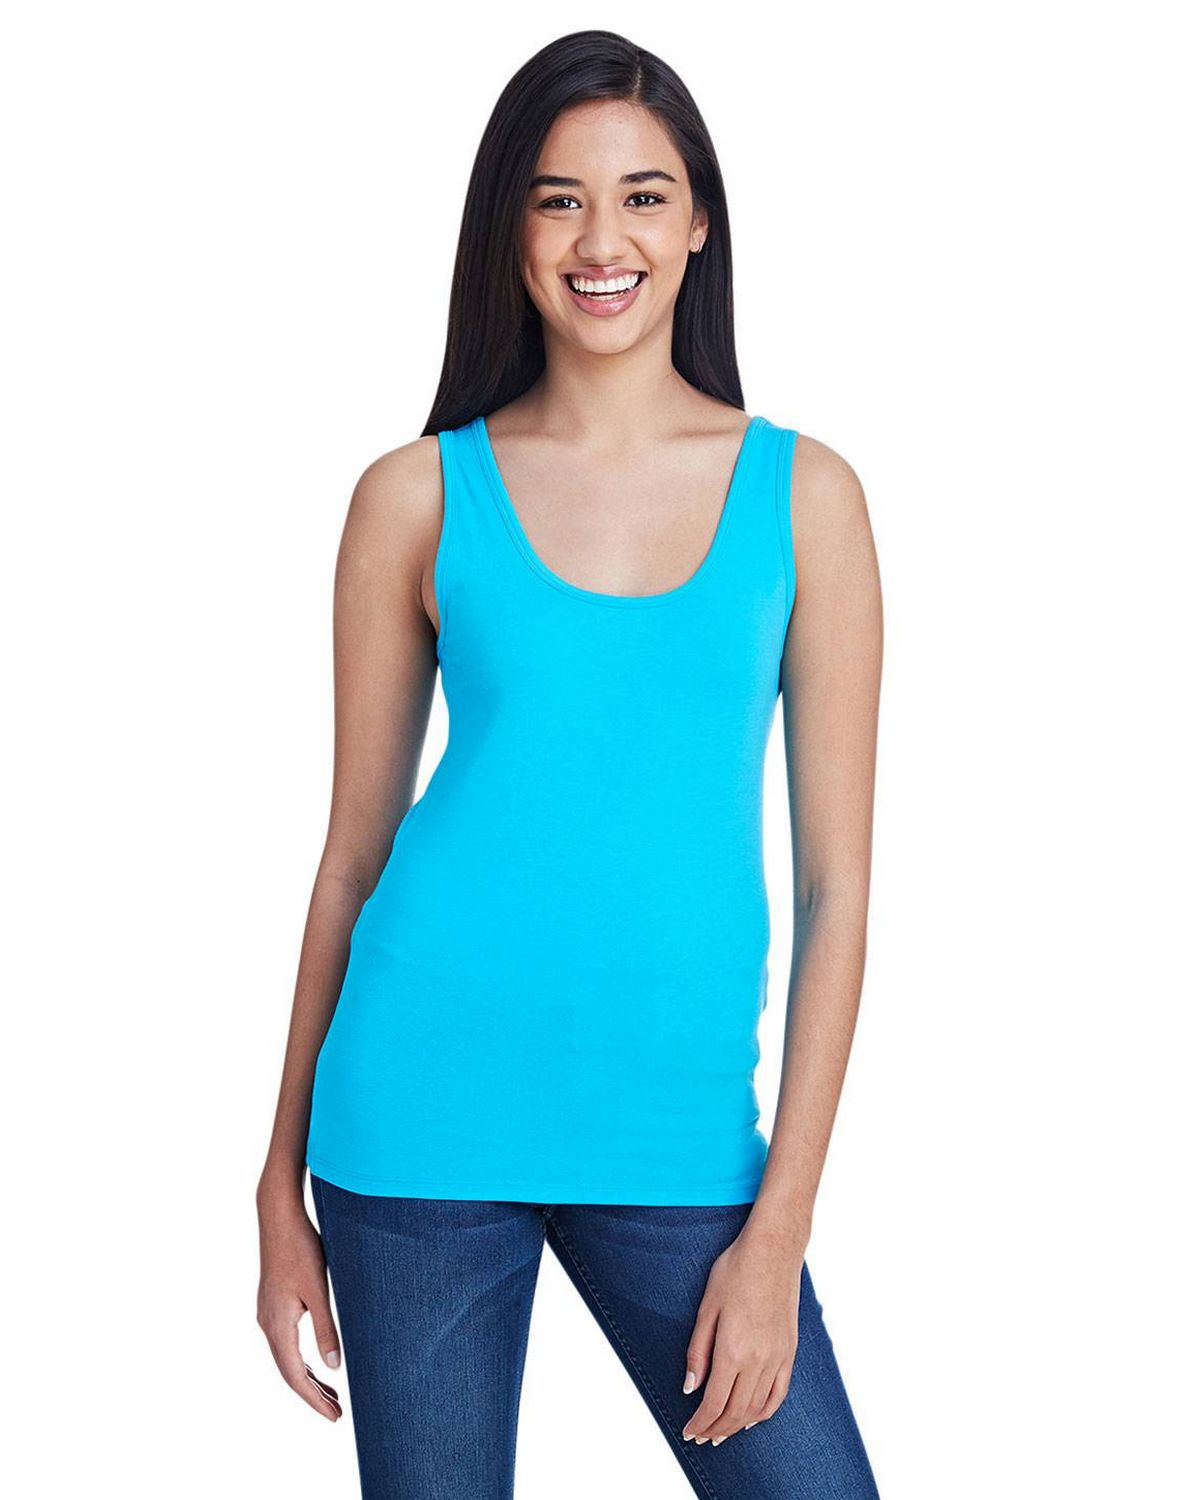 Anvil 2420L Ladies Stretch Tank - Caribbean Blue - S 2420L